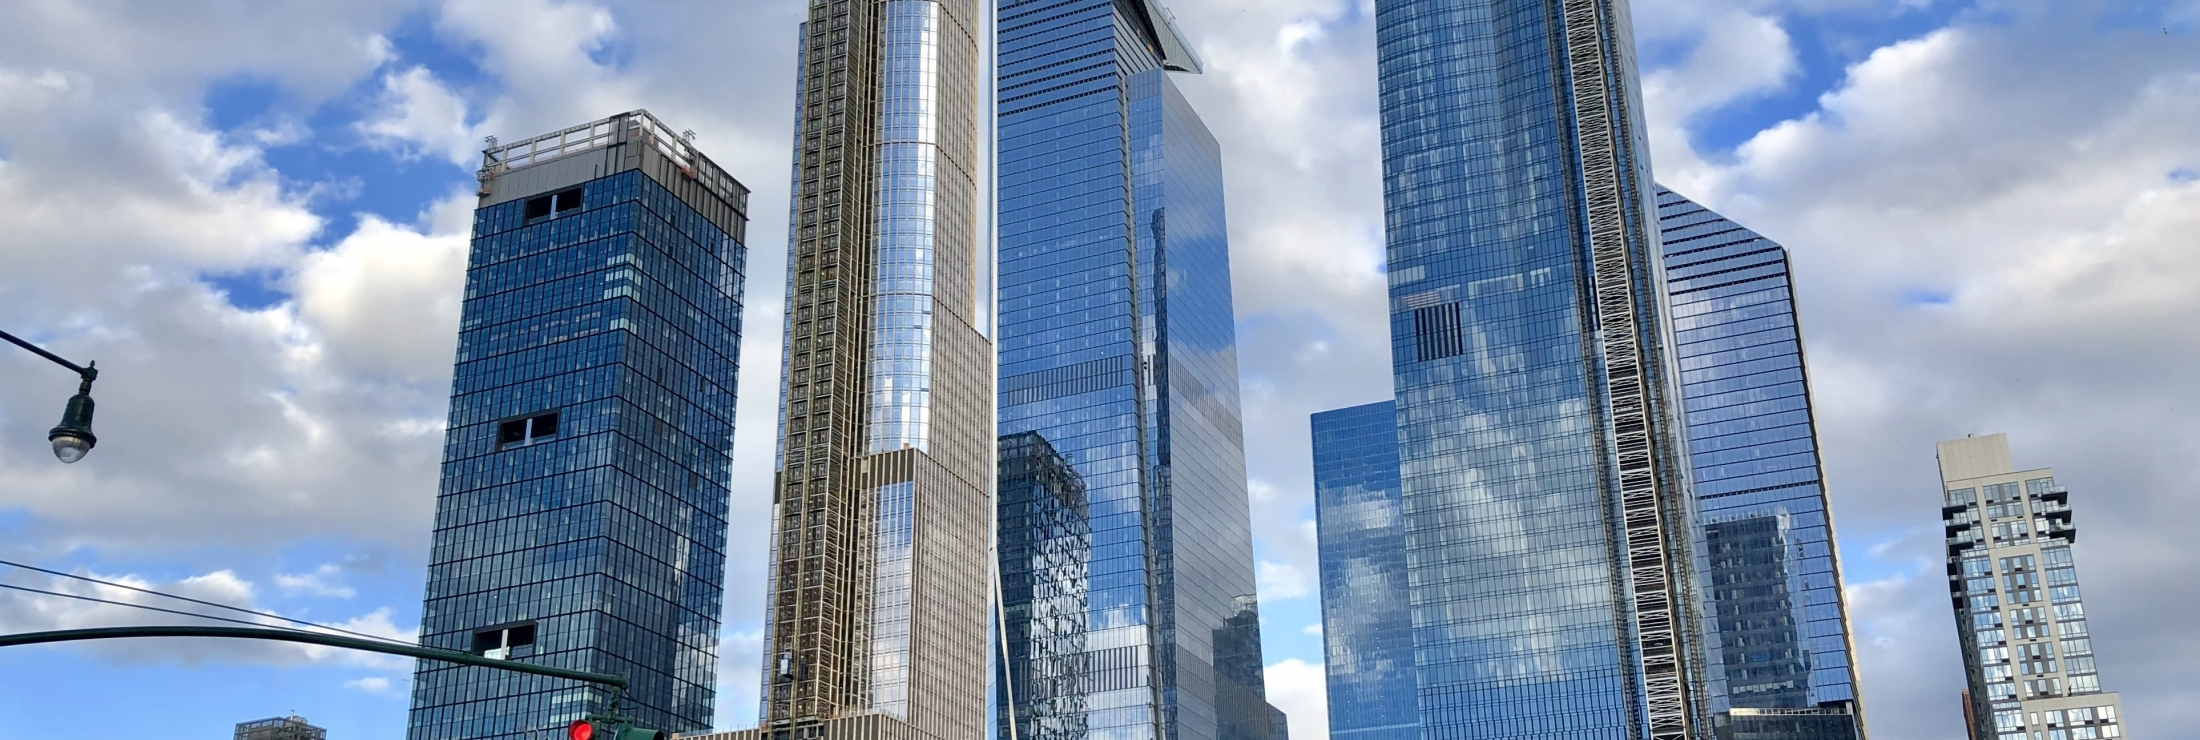 Cladding Corp - 55 Hudson Yards - Swisspearl